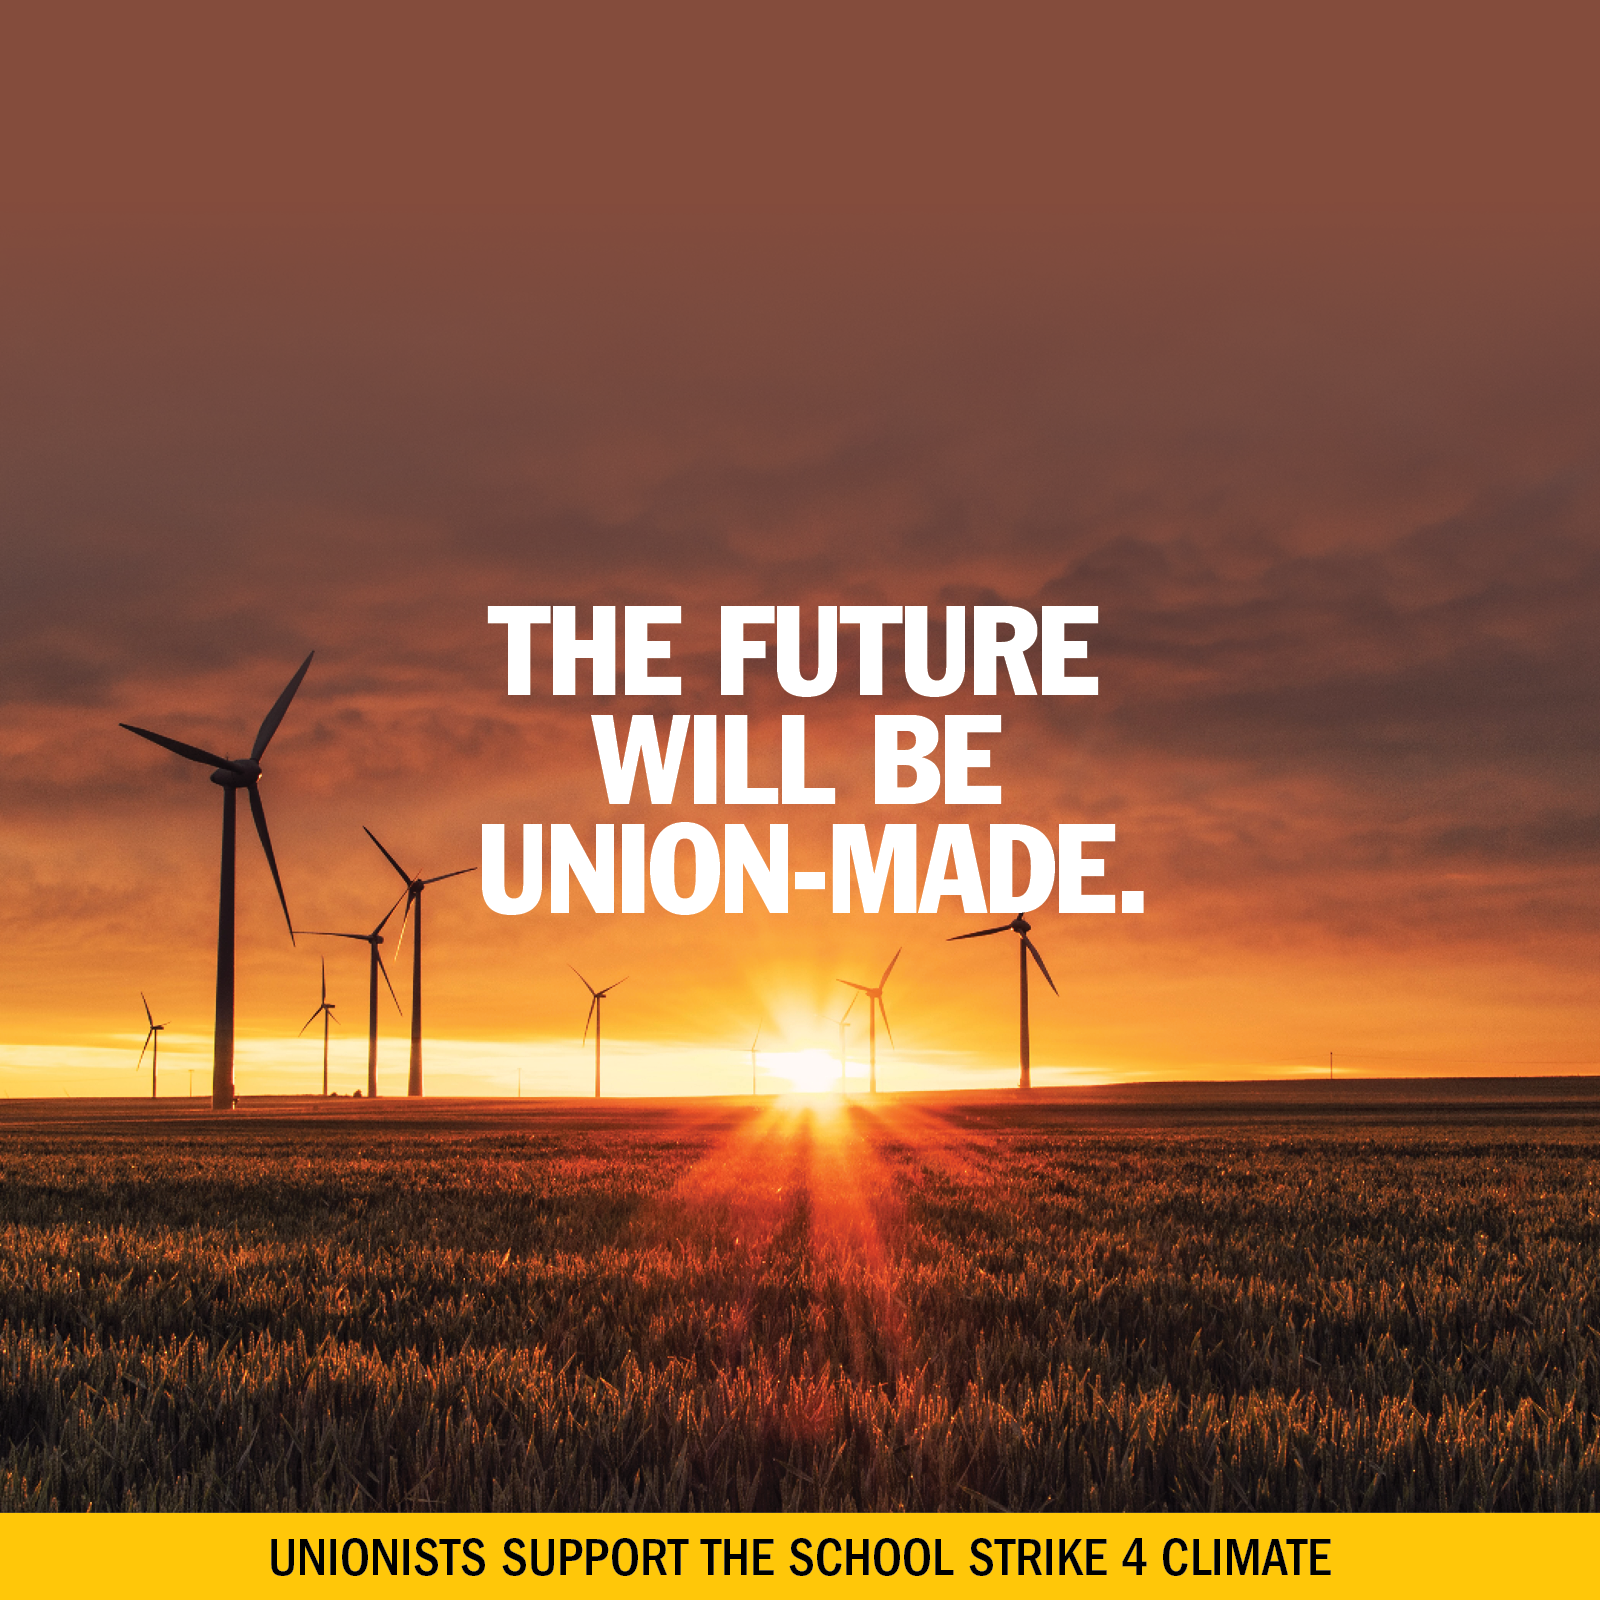 The future will be union made